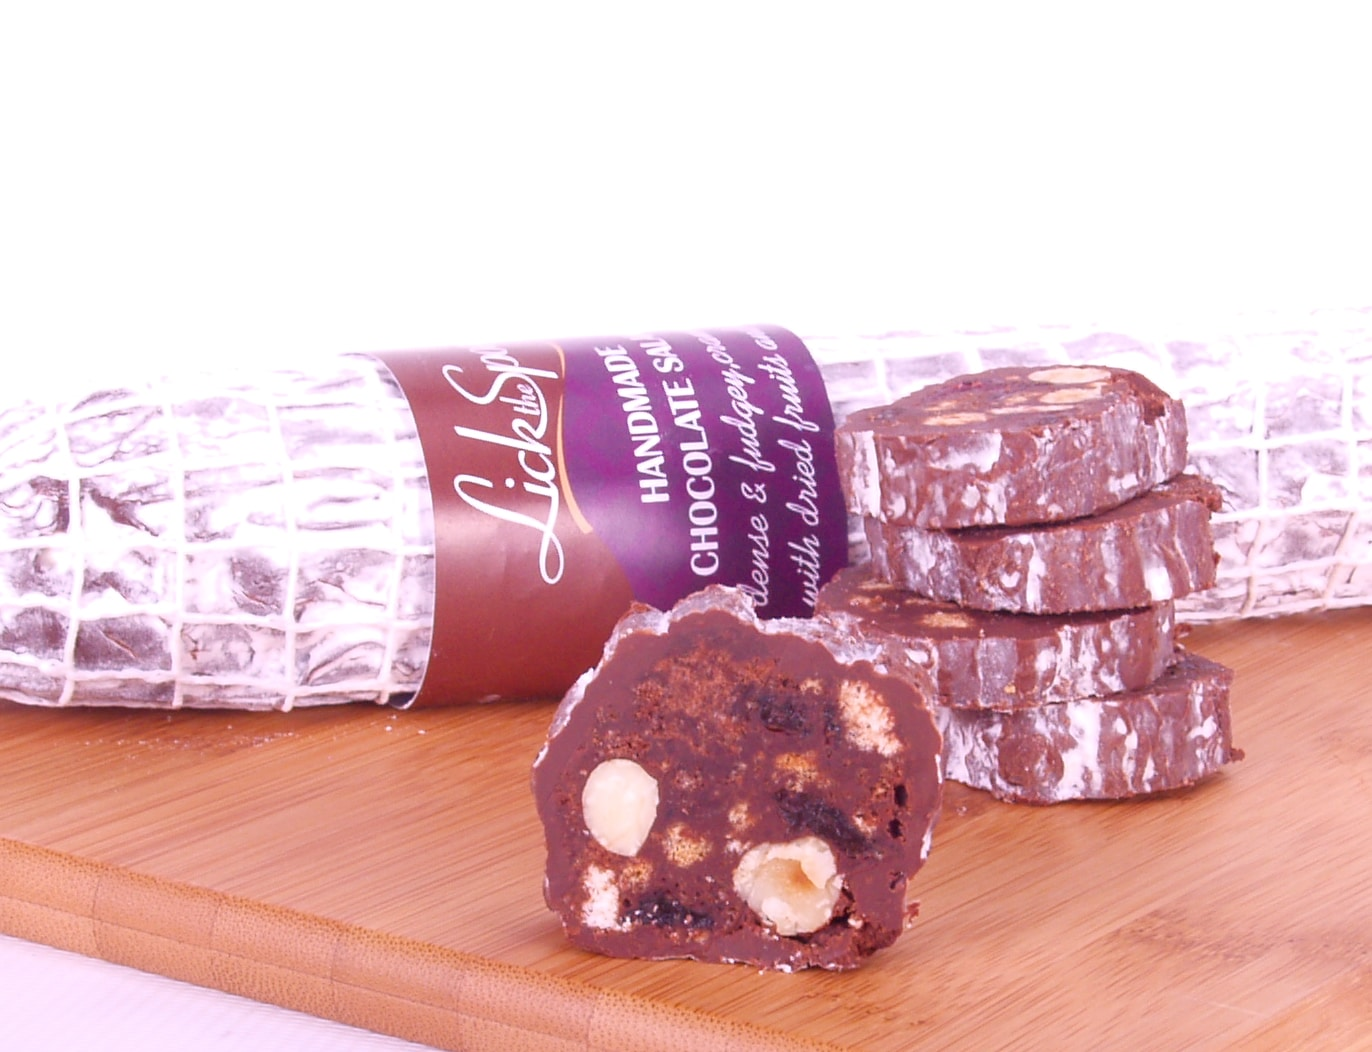 Chocolate Salami - Classic Fruit and Nut - Lick the Spoon